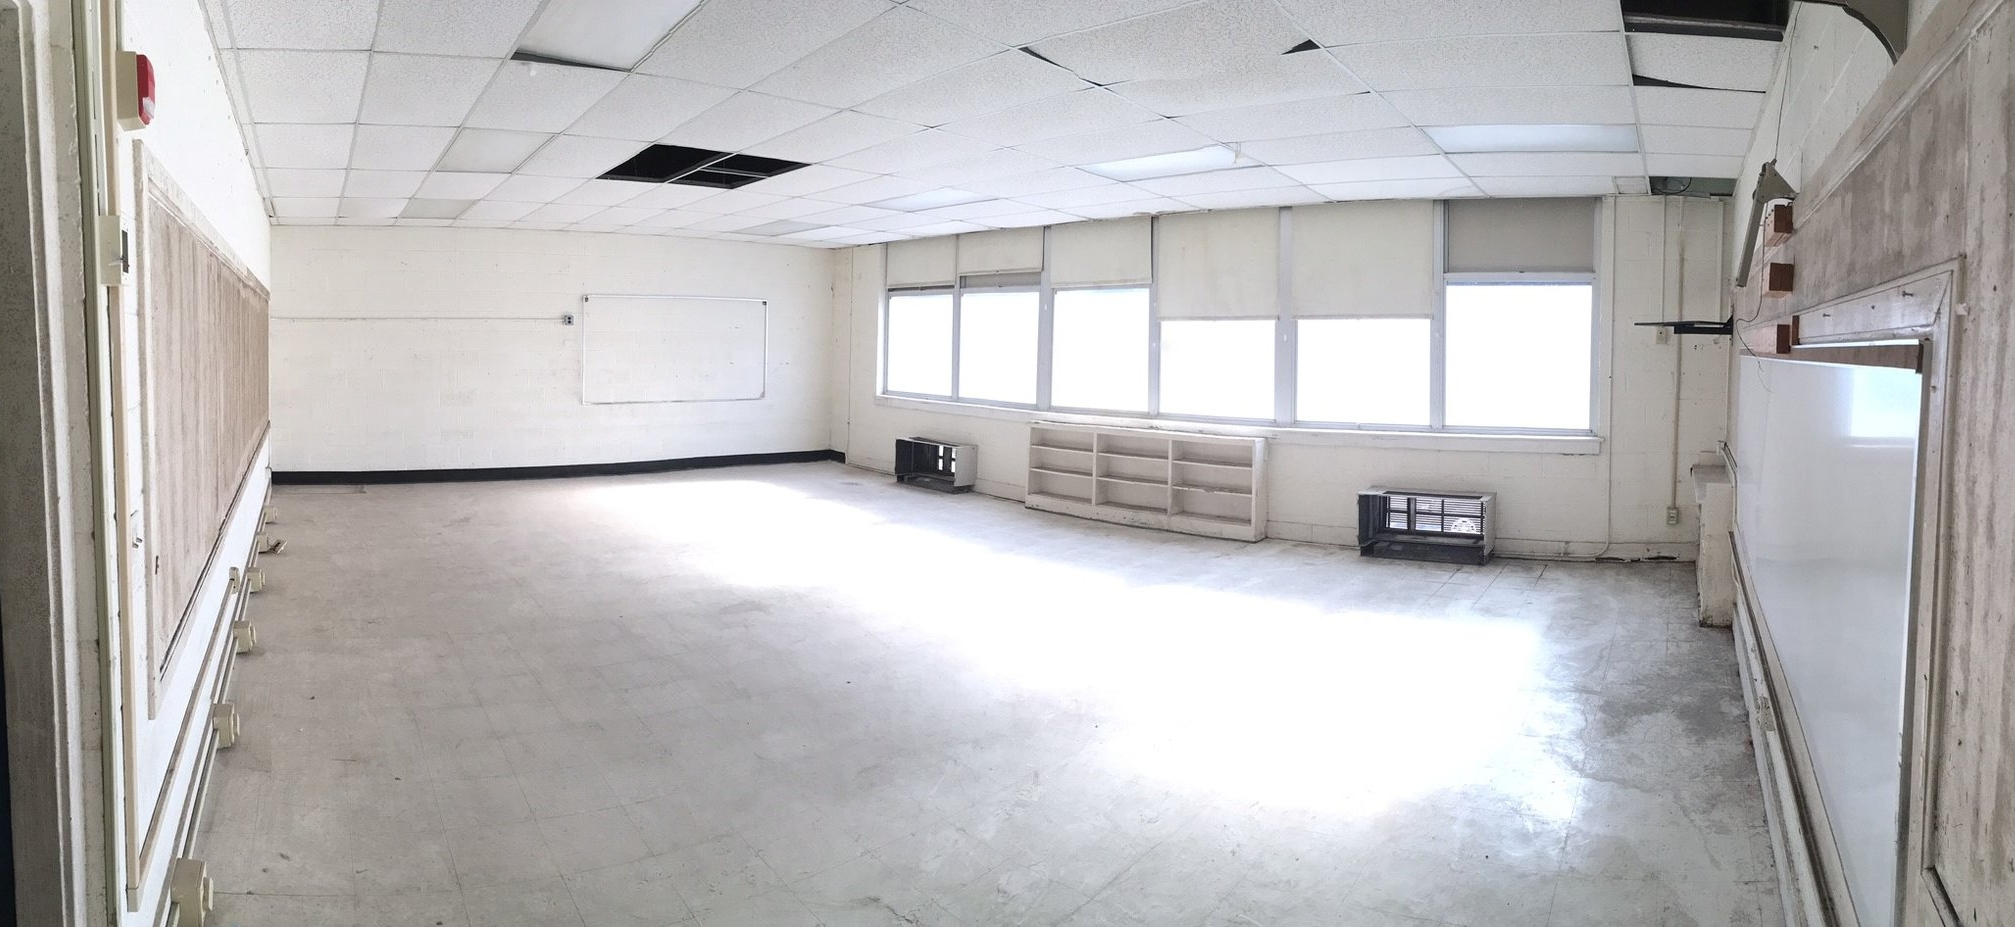 Current condition of Old Chicora classroom. Each classroom will be divided into three to four artist work studios. Natural light and high ceilings allow light to penetrate the space.